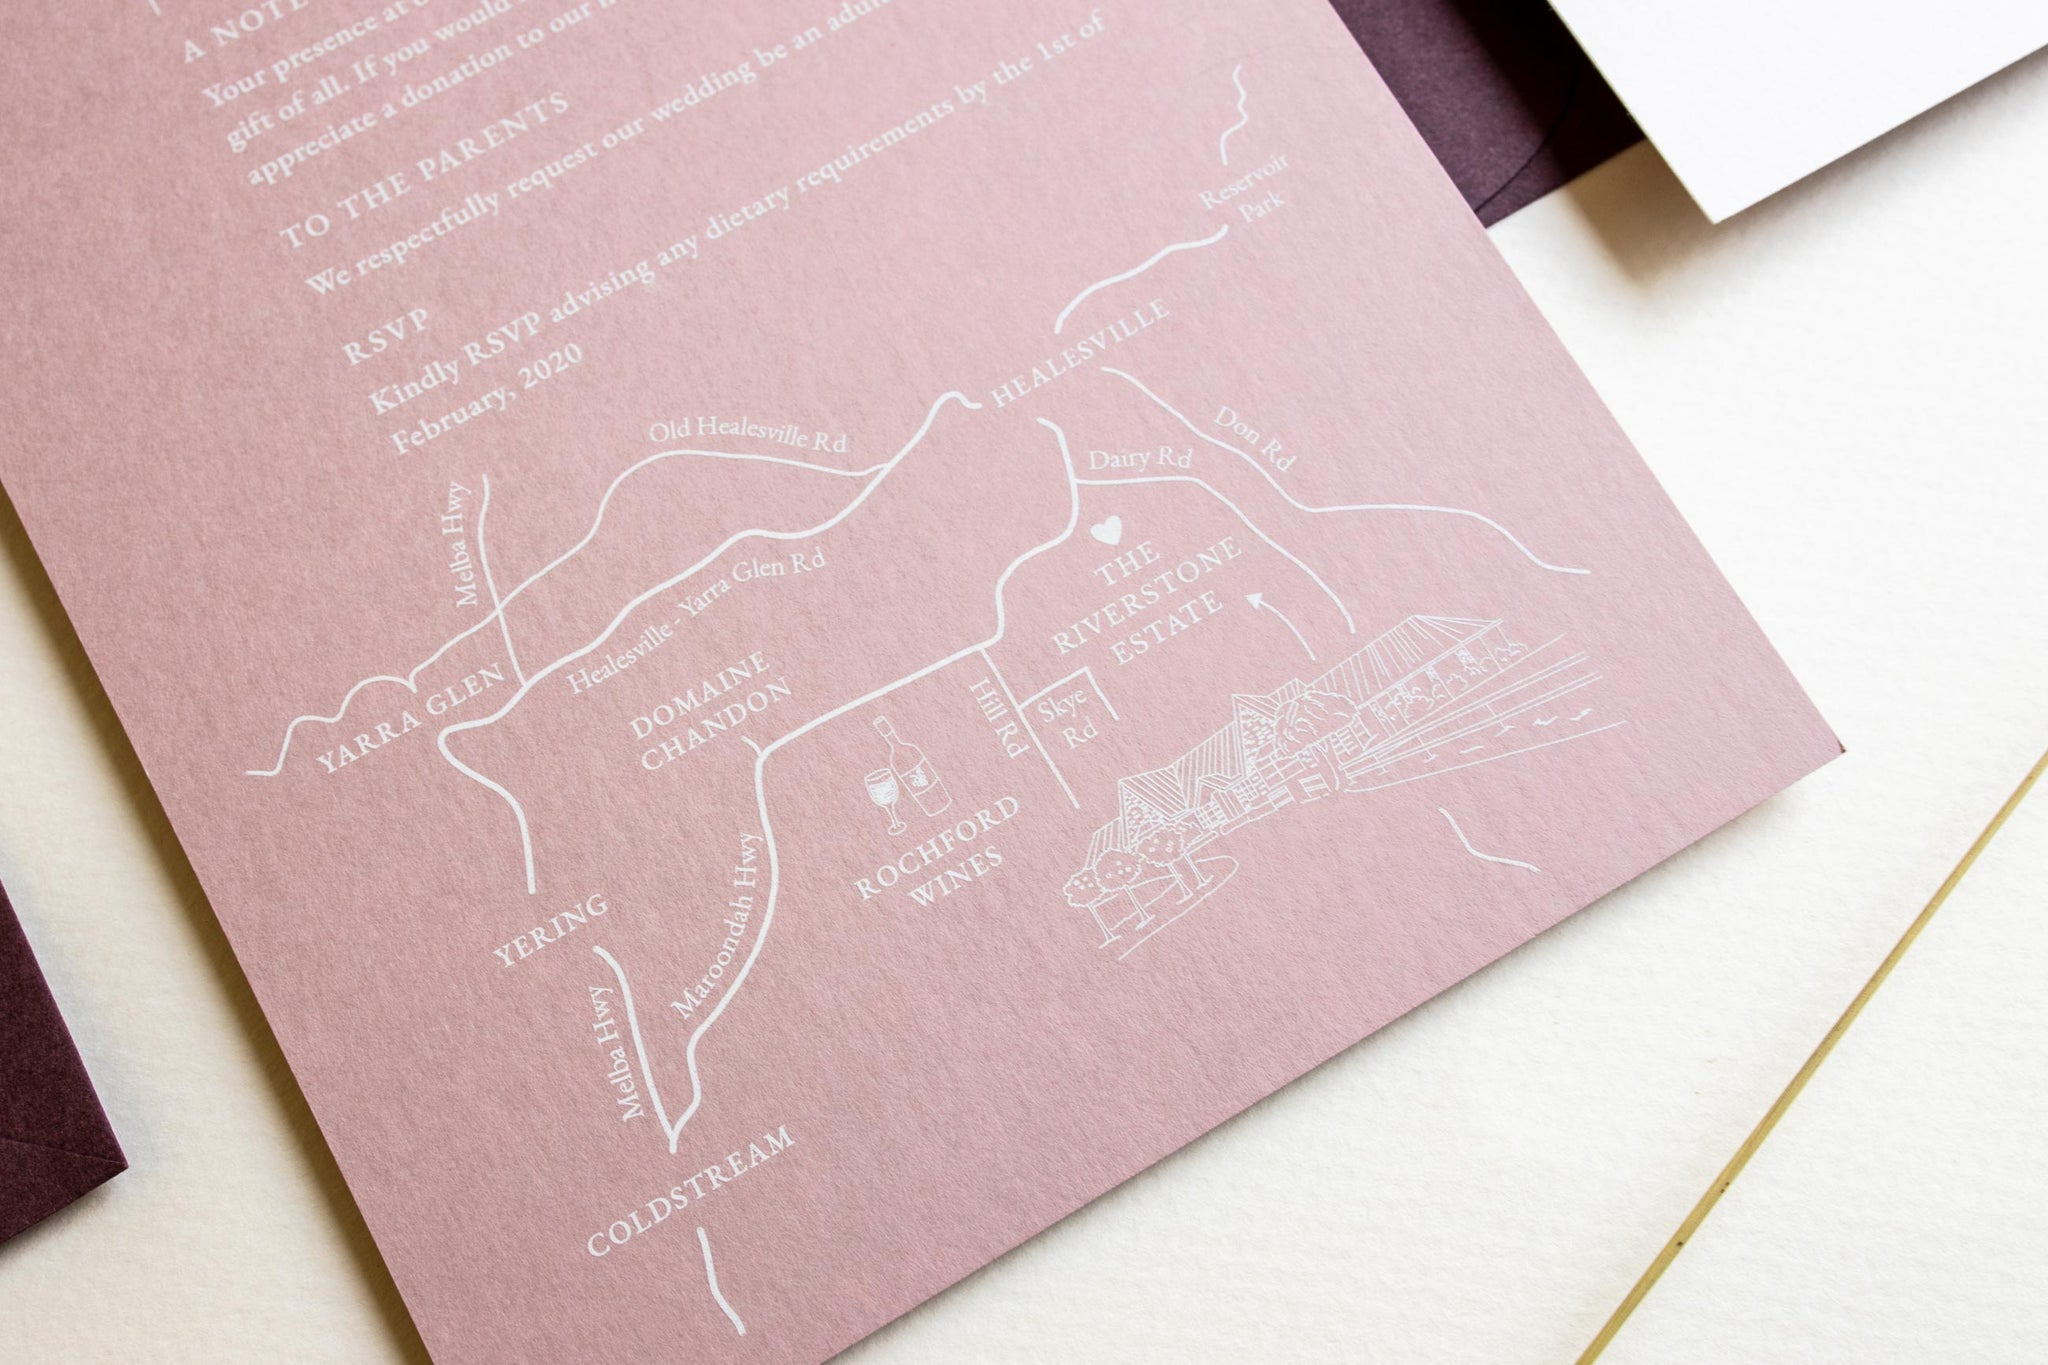 How to word wedding invitations and other must-have details